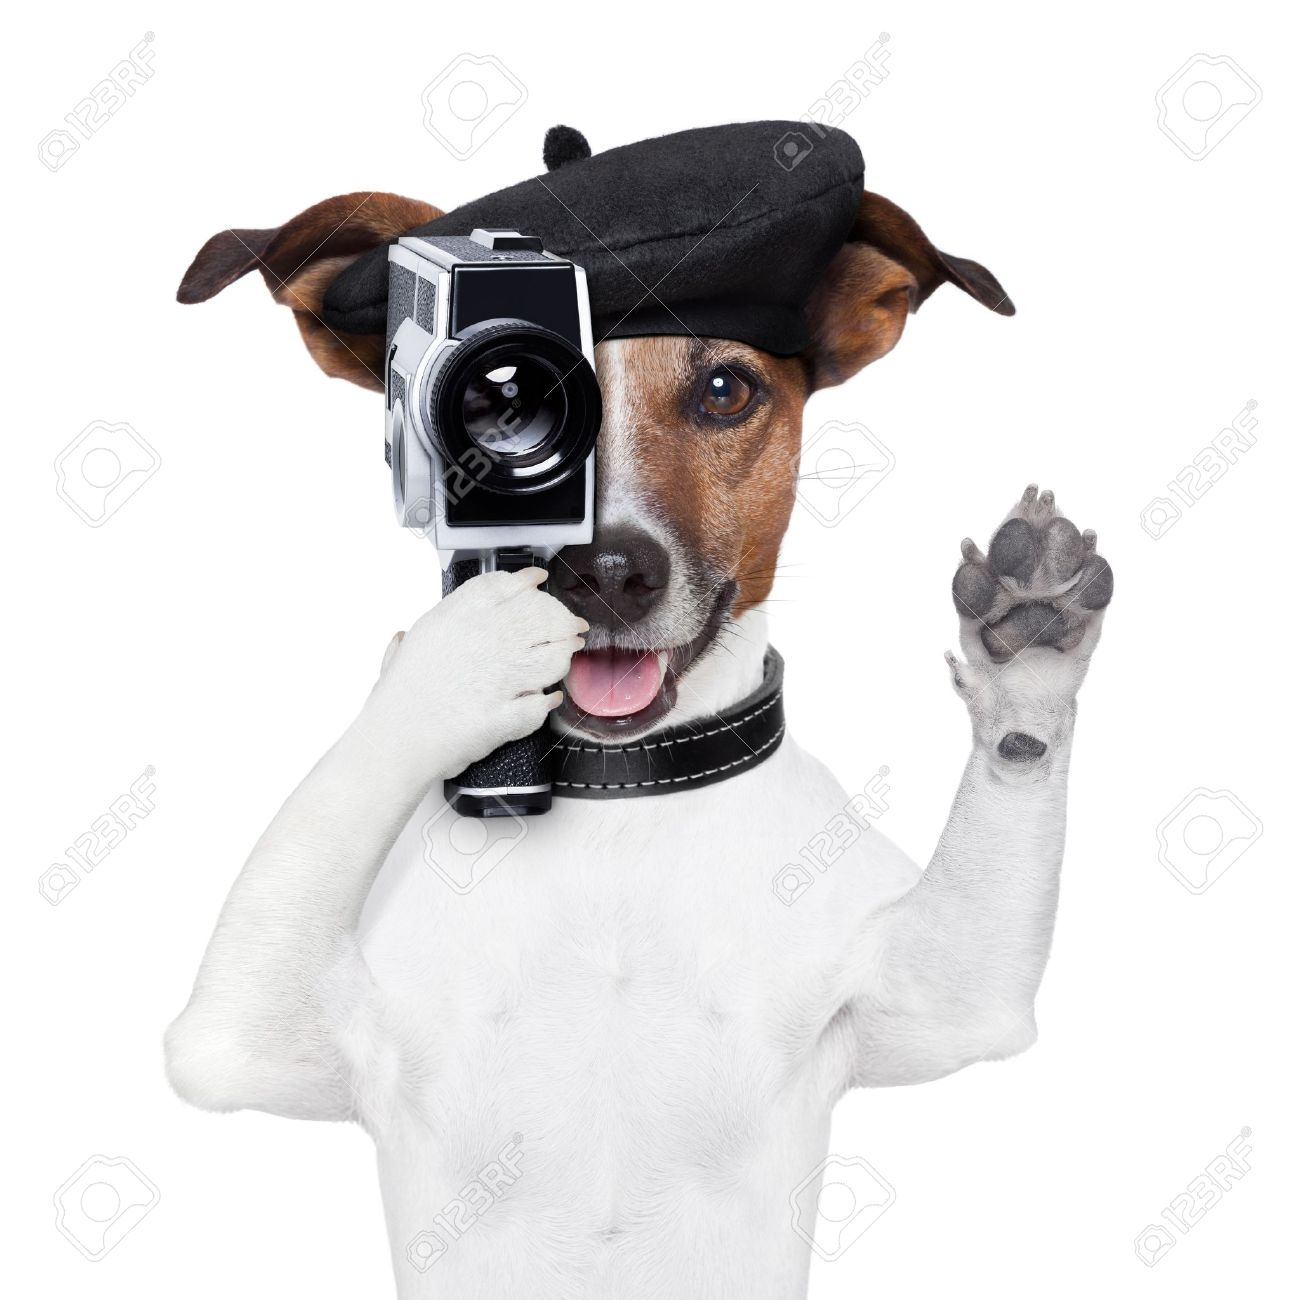 movie director dog with a vintage camera Stock Photo - 17882434